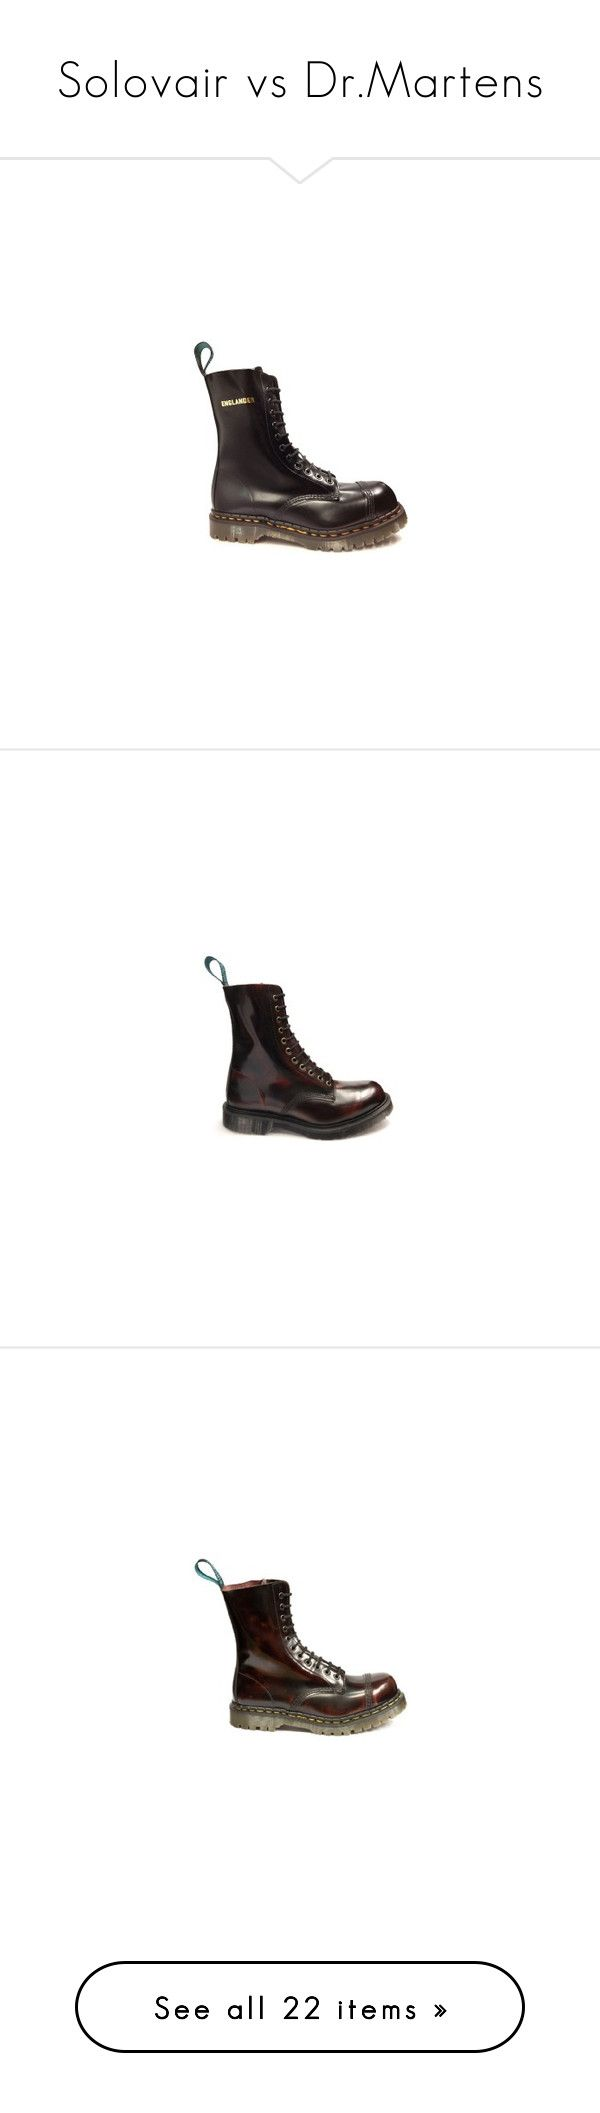 """""""Solovair vs Dr.Martens"""" by lorika-borika on Polyvore featuring shoes, boots, cap shoes, steel toe shoes, stitch shoes, leather boots, steel toe cap boots, ankle boots, lace up bootie и slip resistant shoes"""